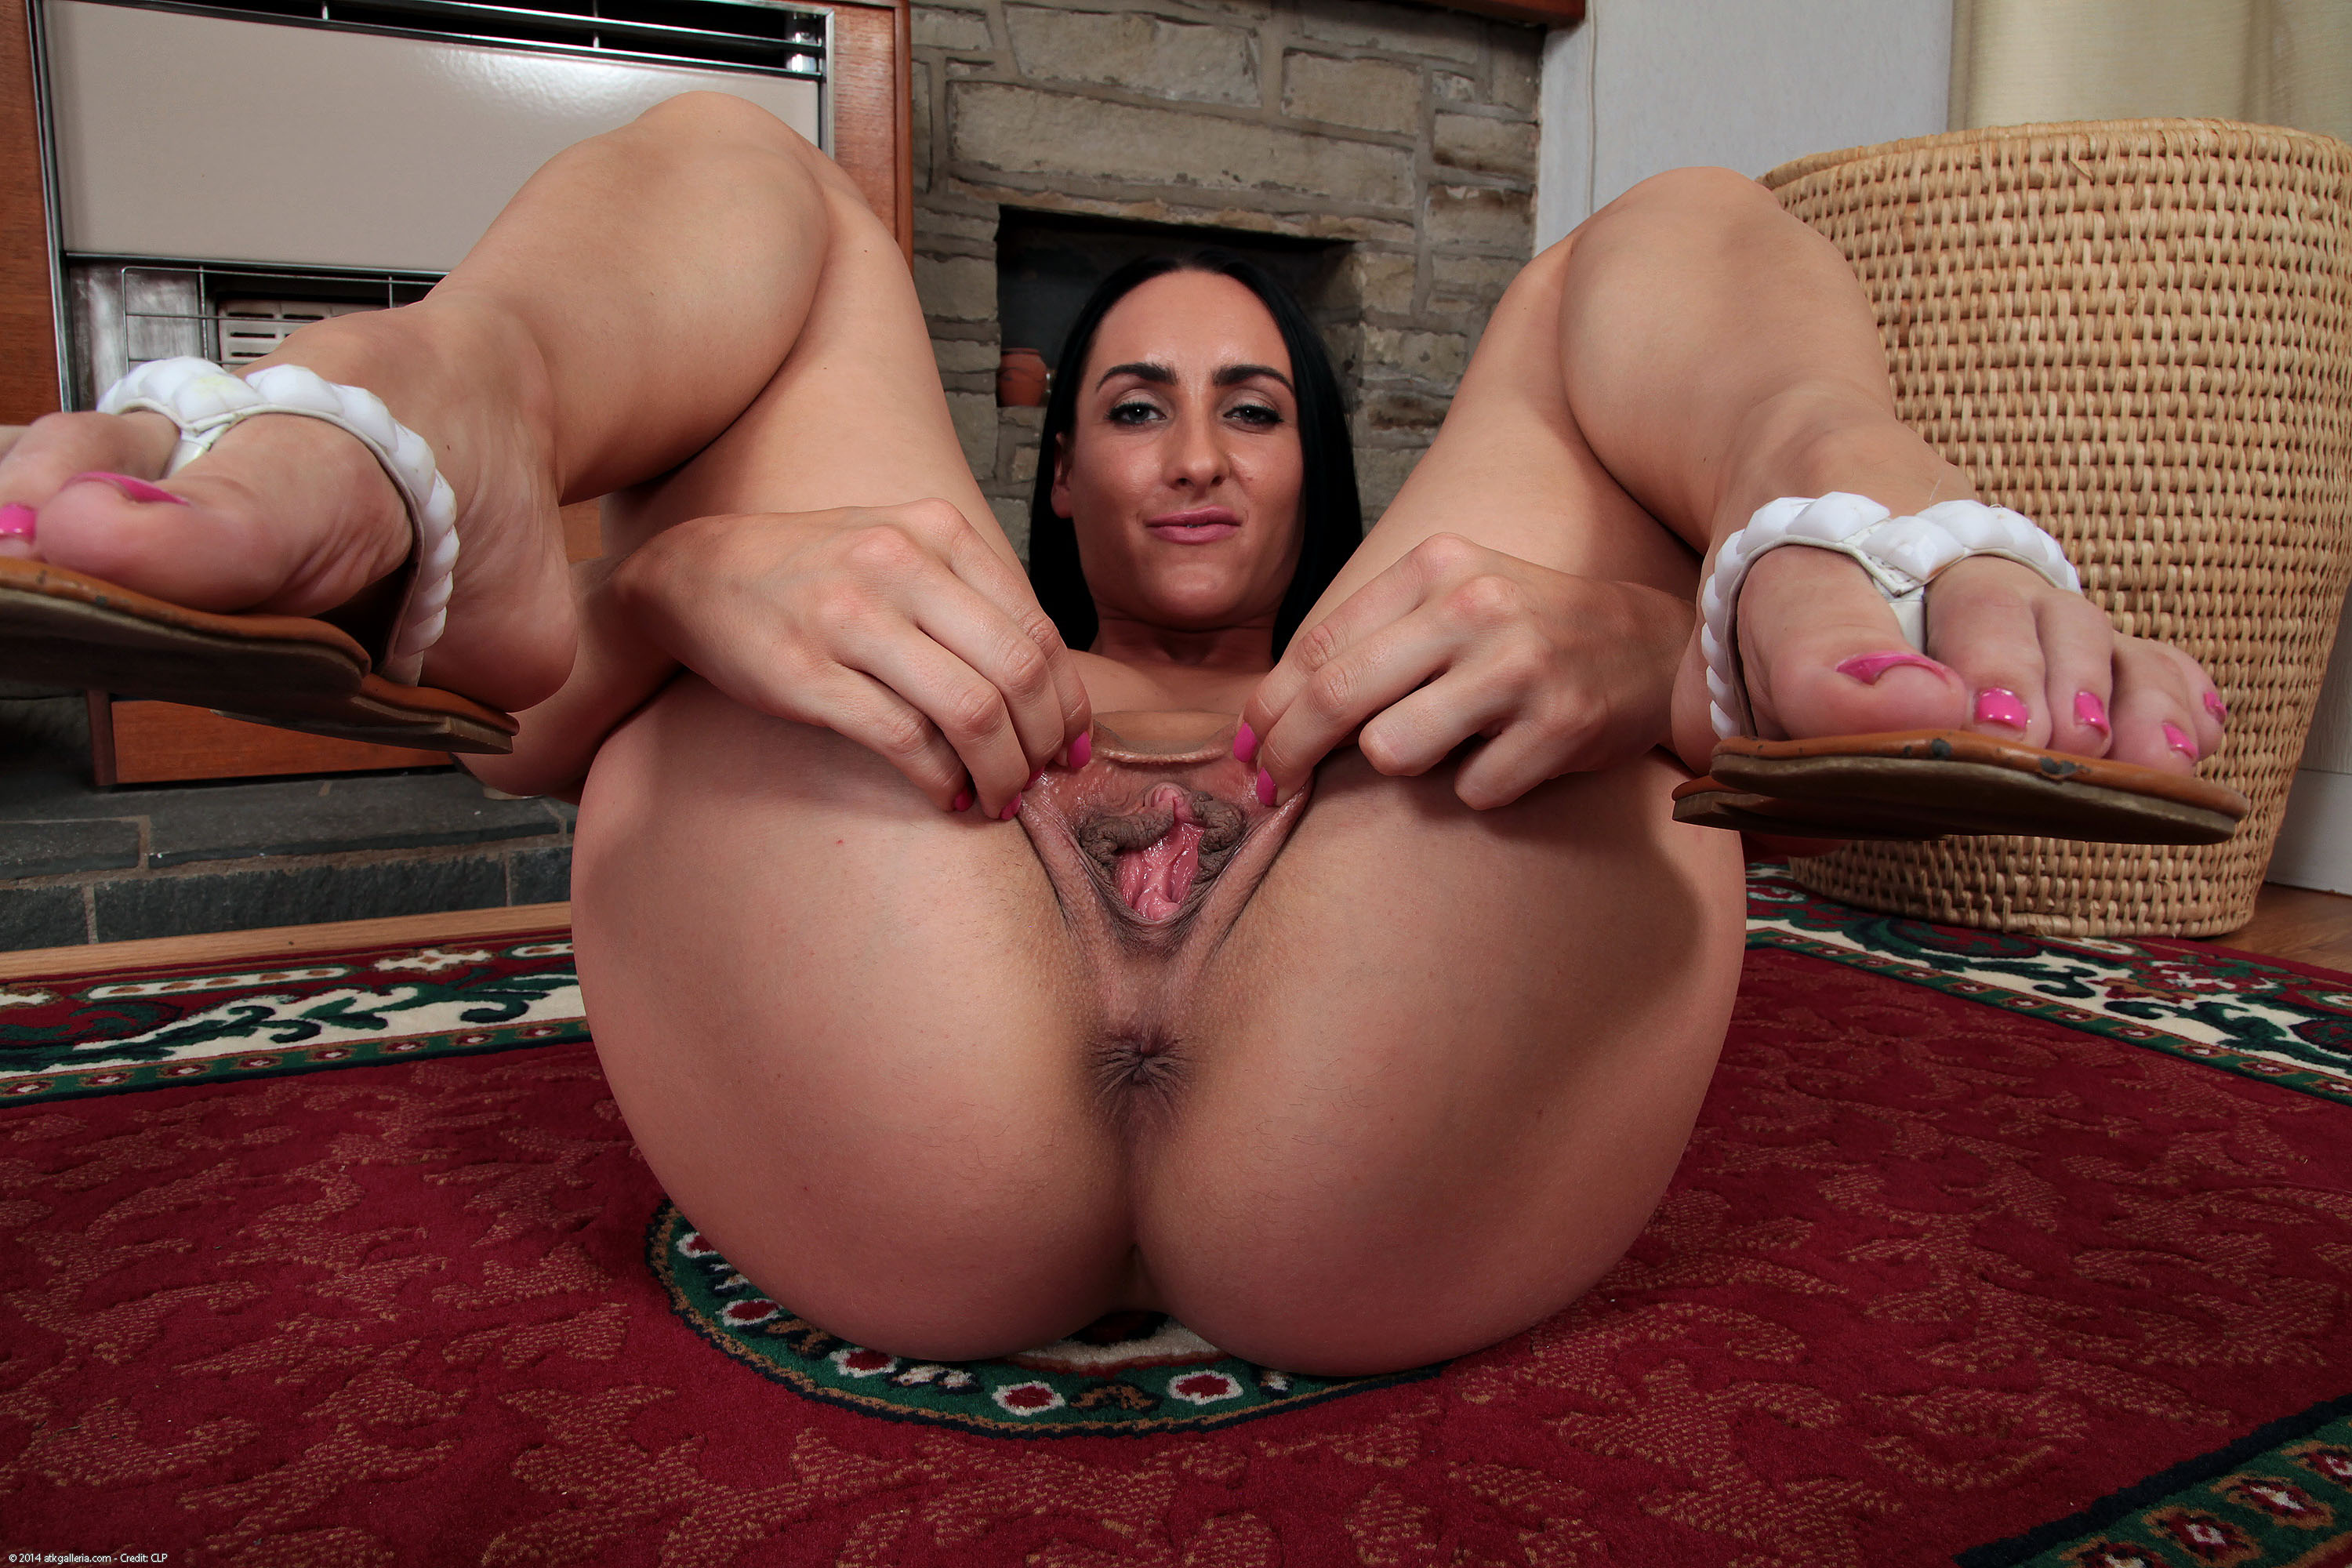 Pussy and ass inspection 4